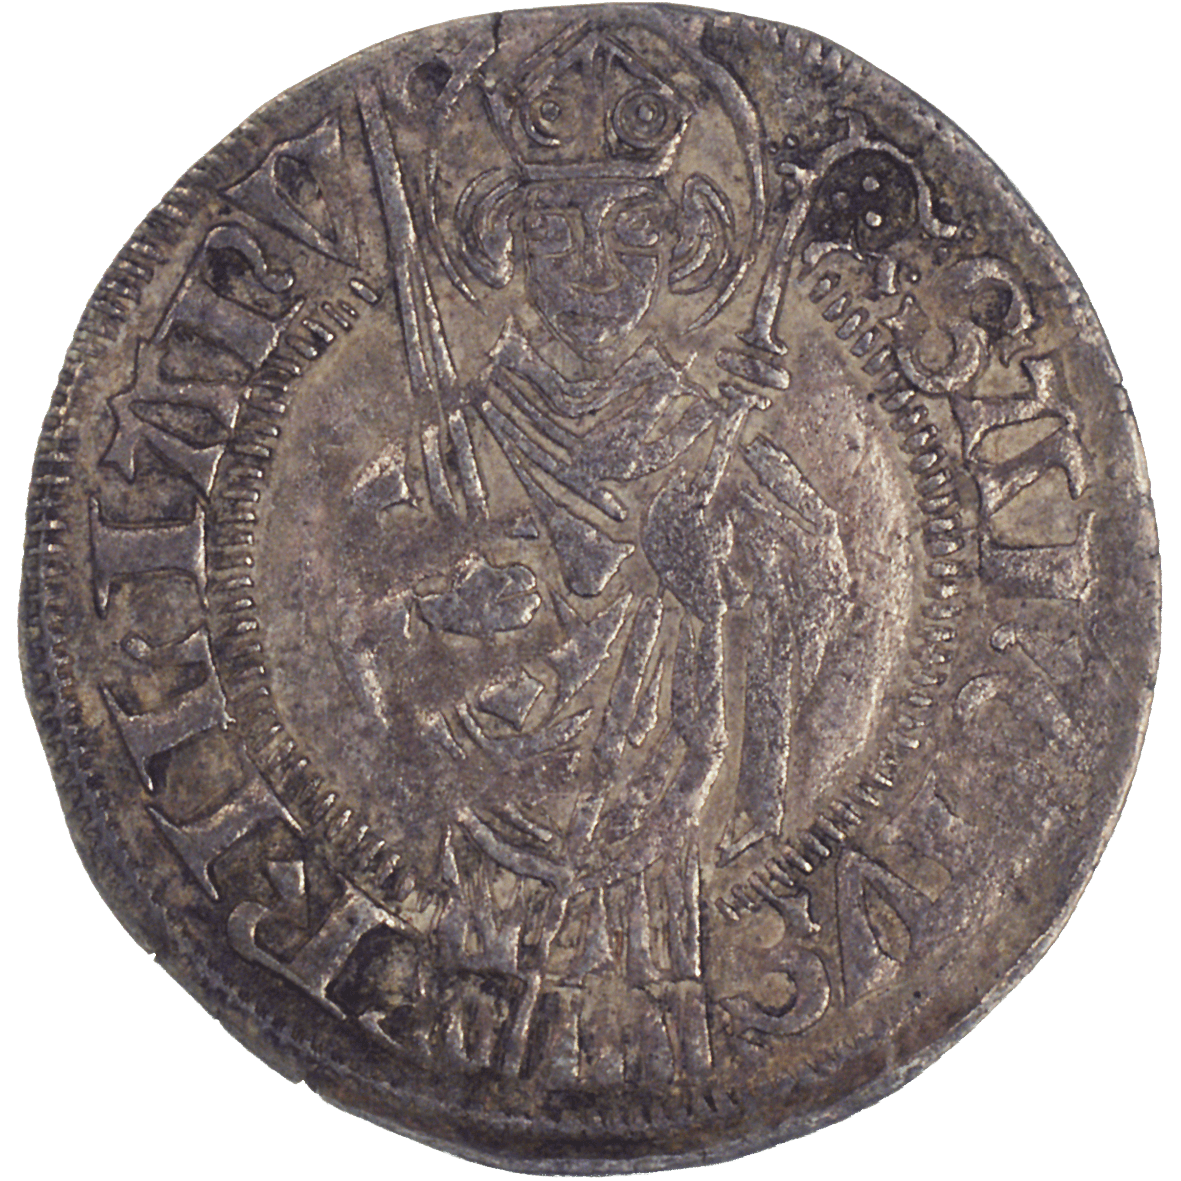 Holy Roman Empire, Bishopric of Würzburg, Rudolf II of Scherenberg, Shilling  (reverse)